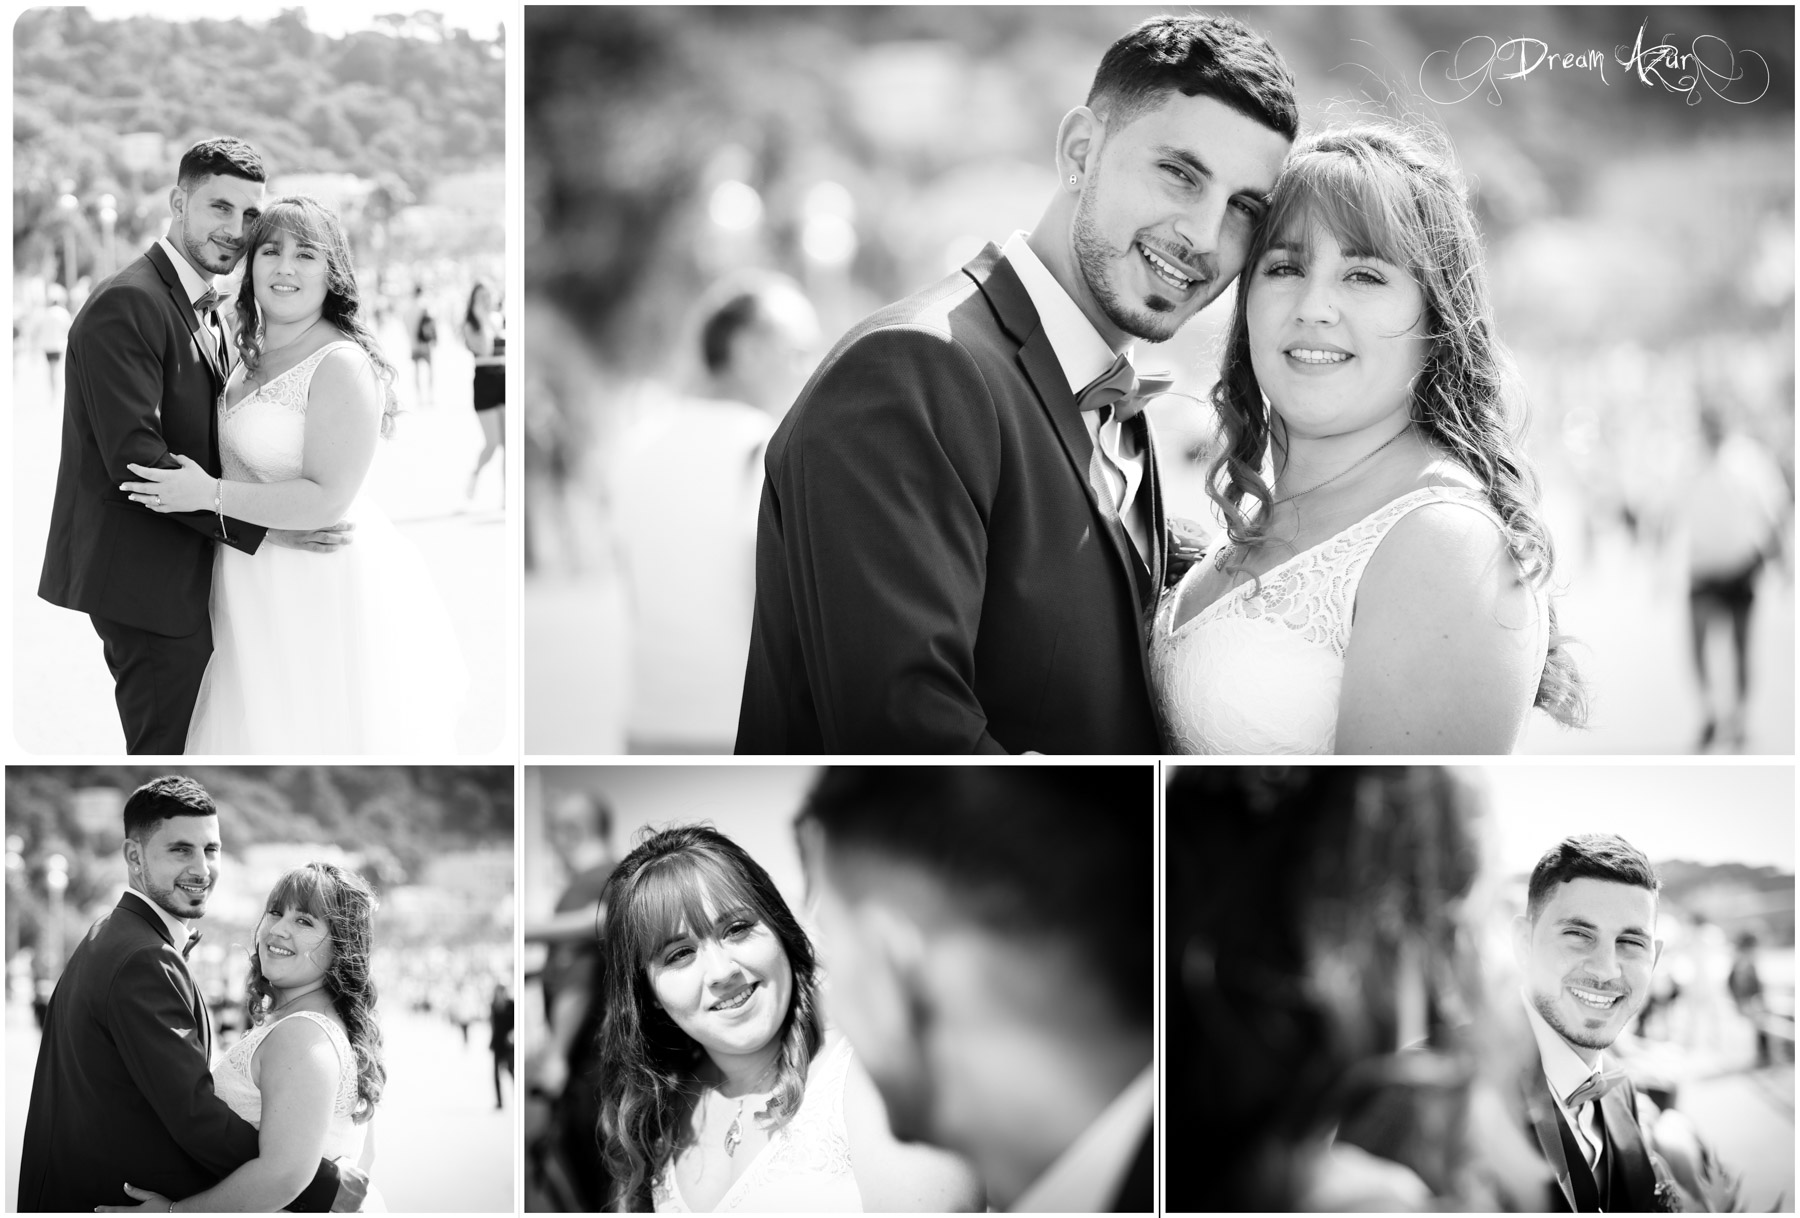 190824COMPO-Mariage-Cindy-et-Anthony-15